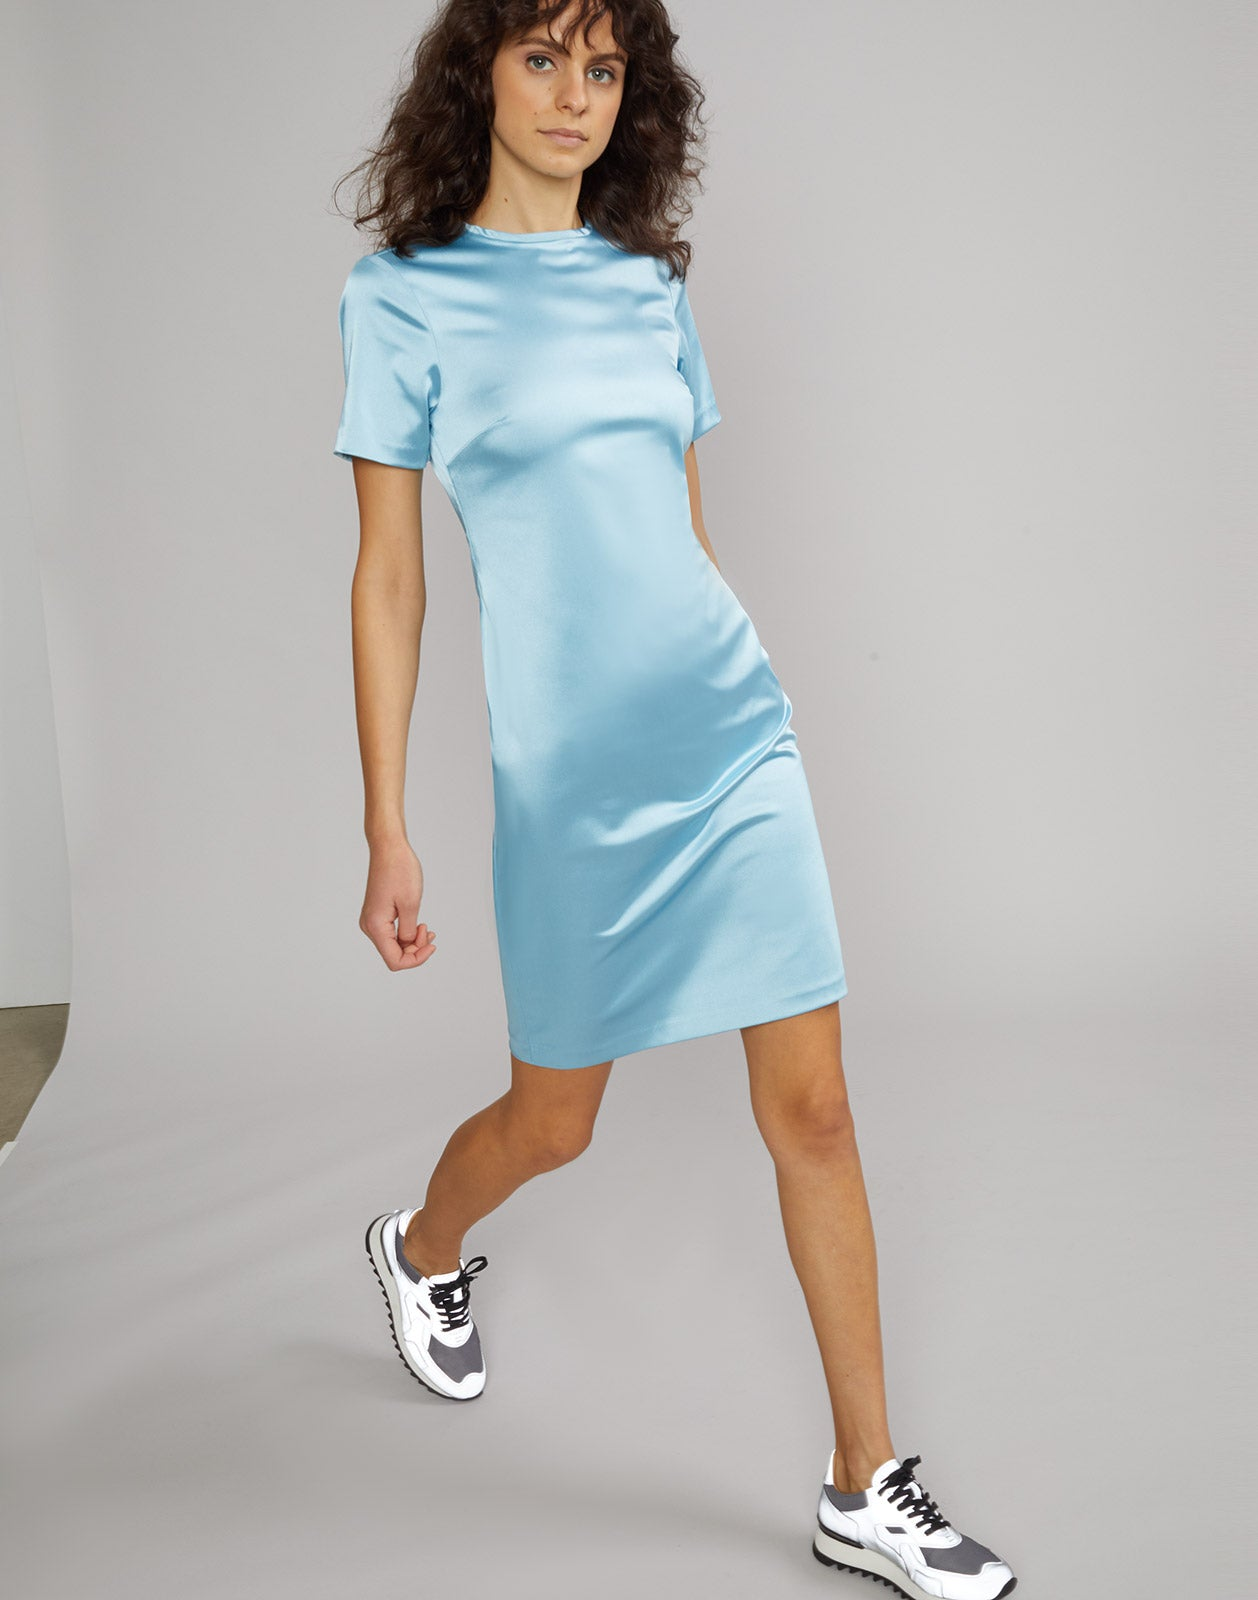 Partial side view of Lake Shore stretch satin t-shirt dress on model.